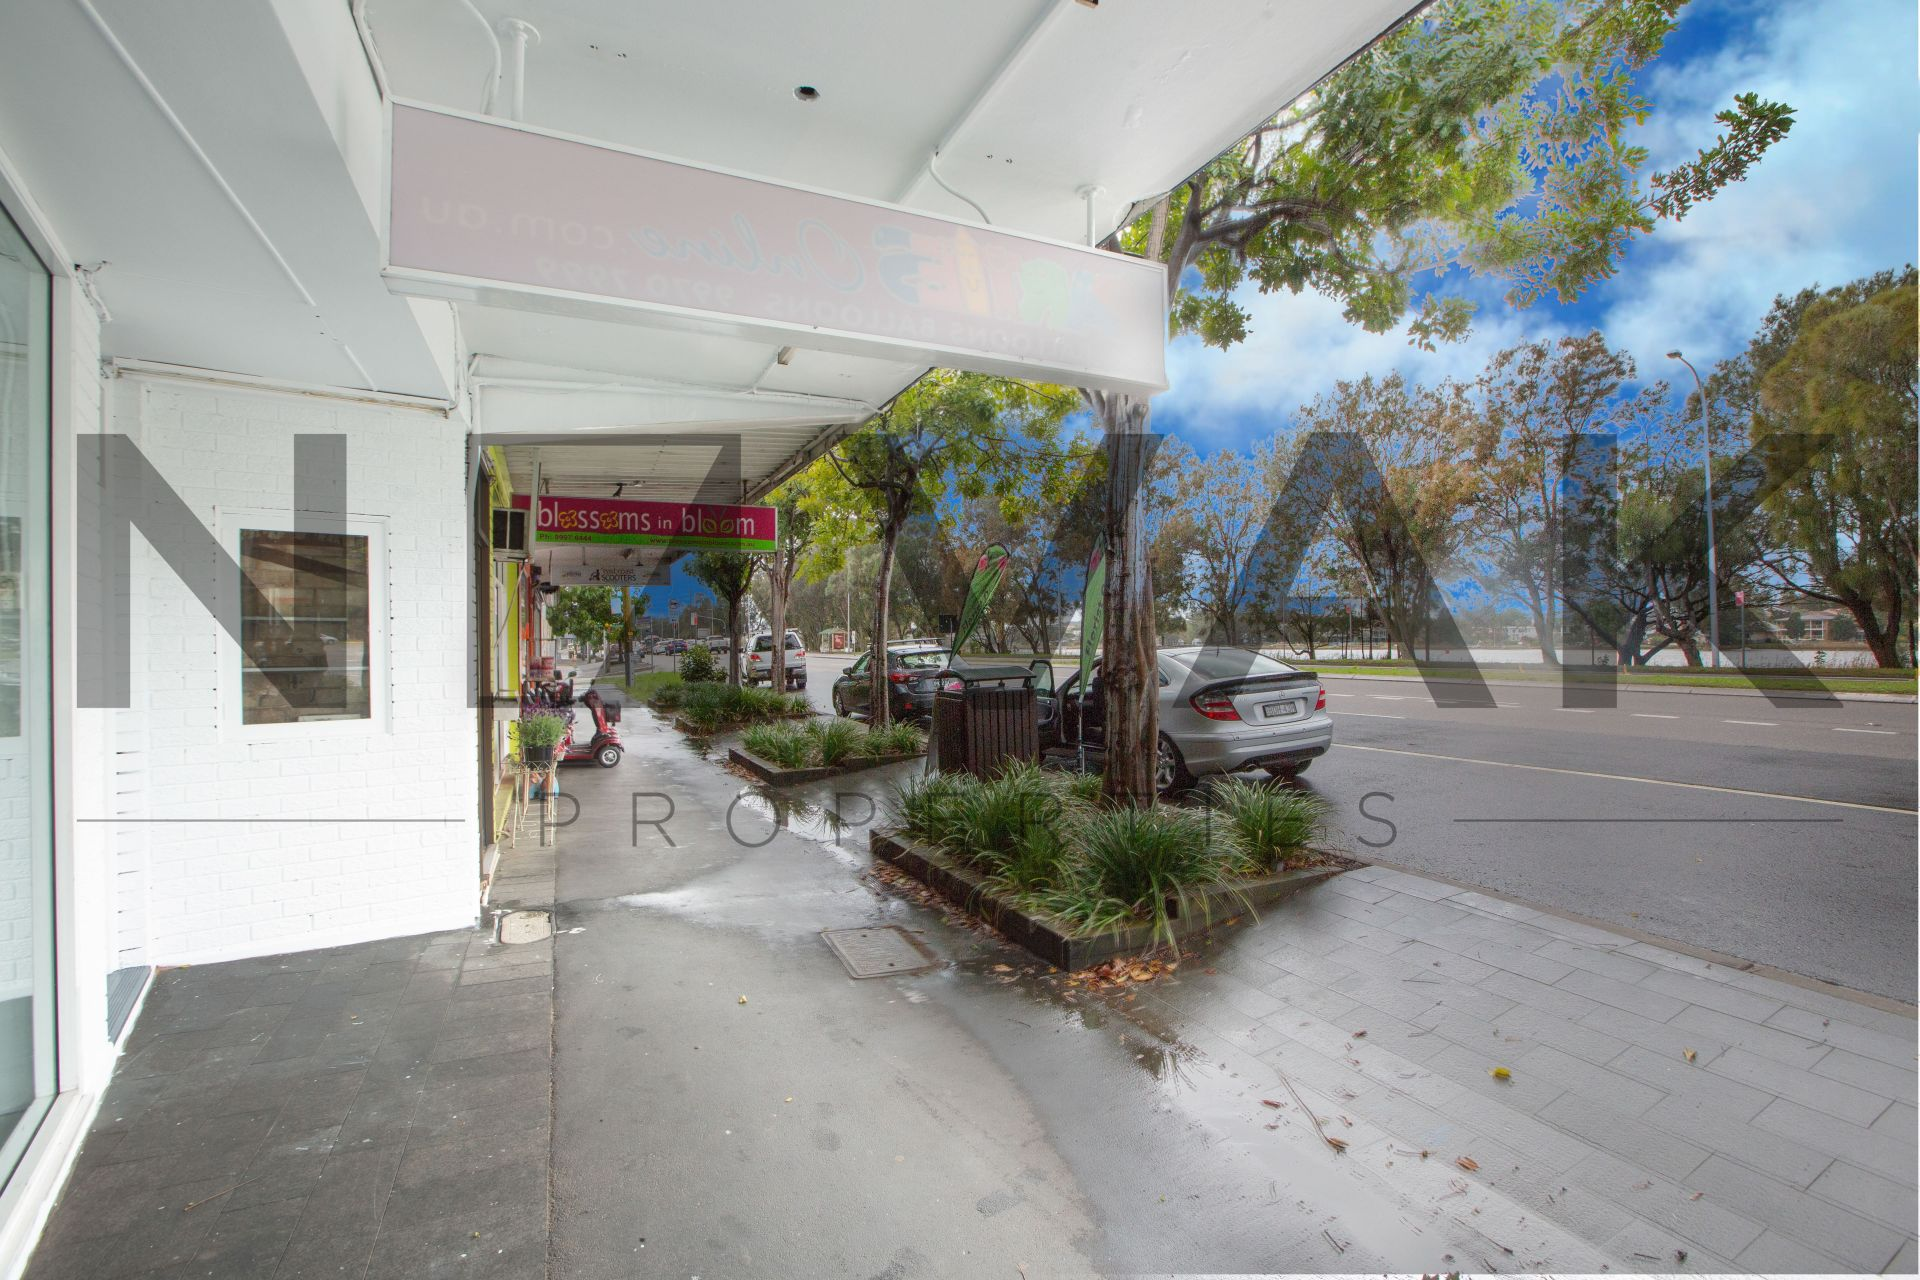 MUST BE LEASED! FIRST LEVEL POSITION PRIME FOR MARKET